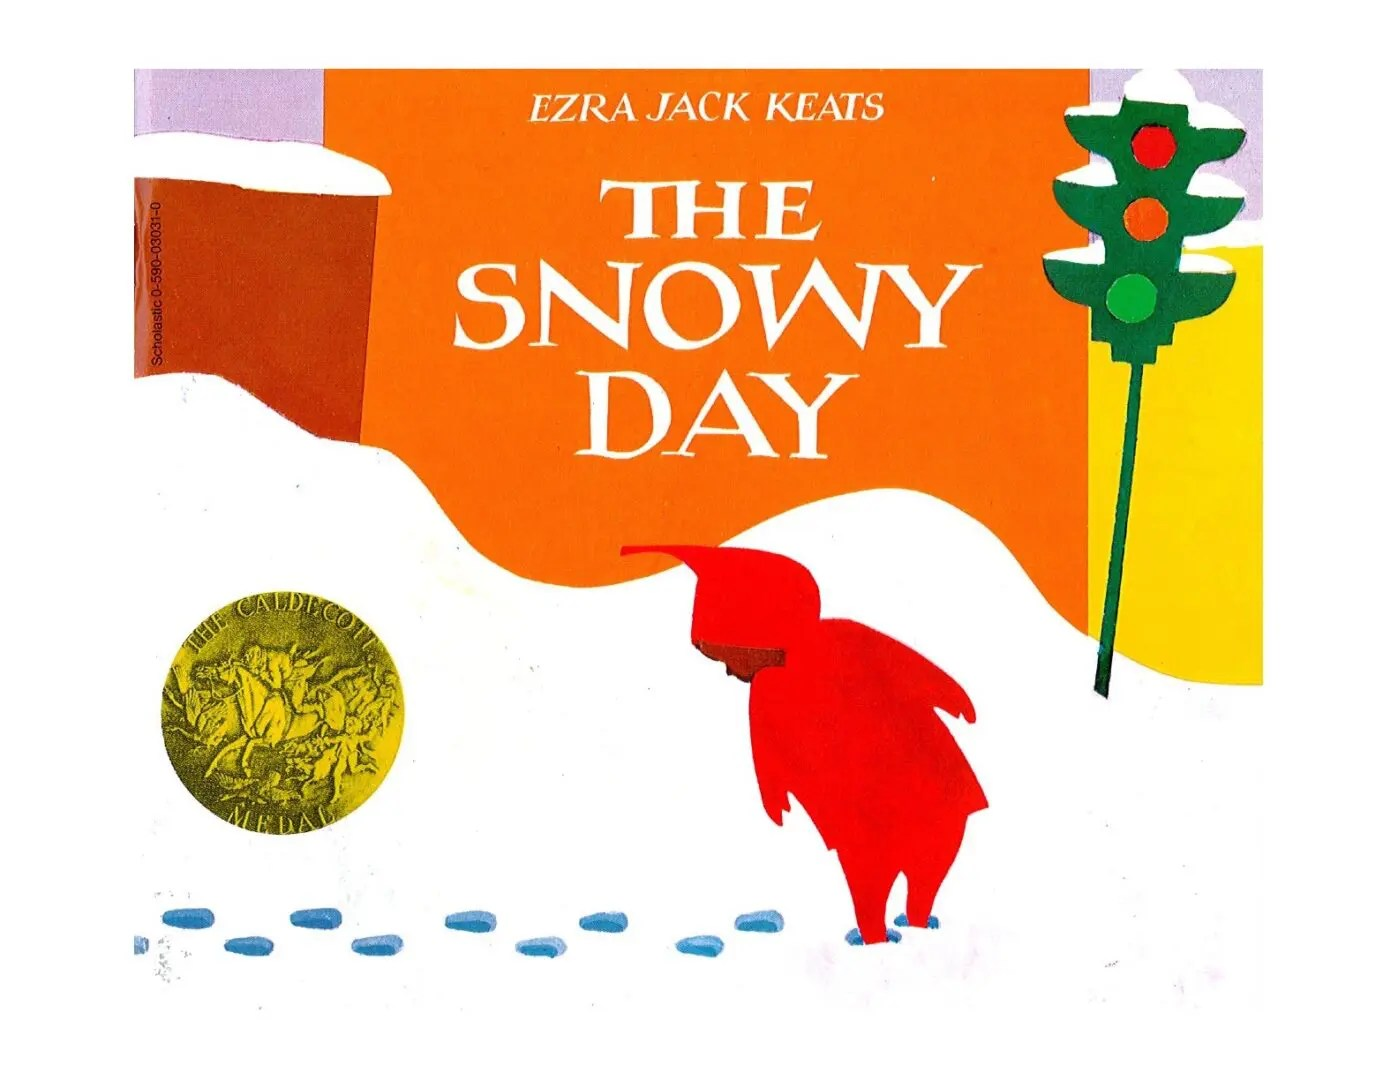 Image result for snowy day ezra jack keats